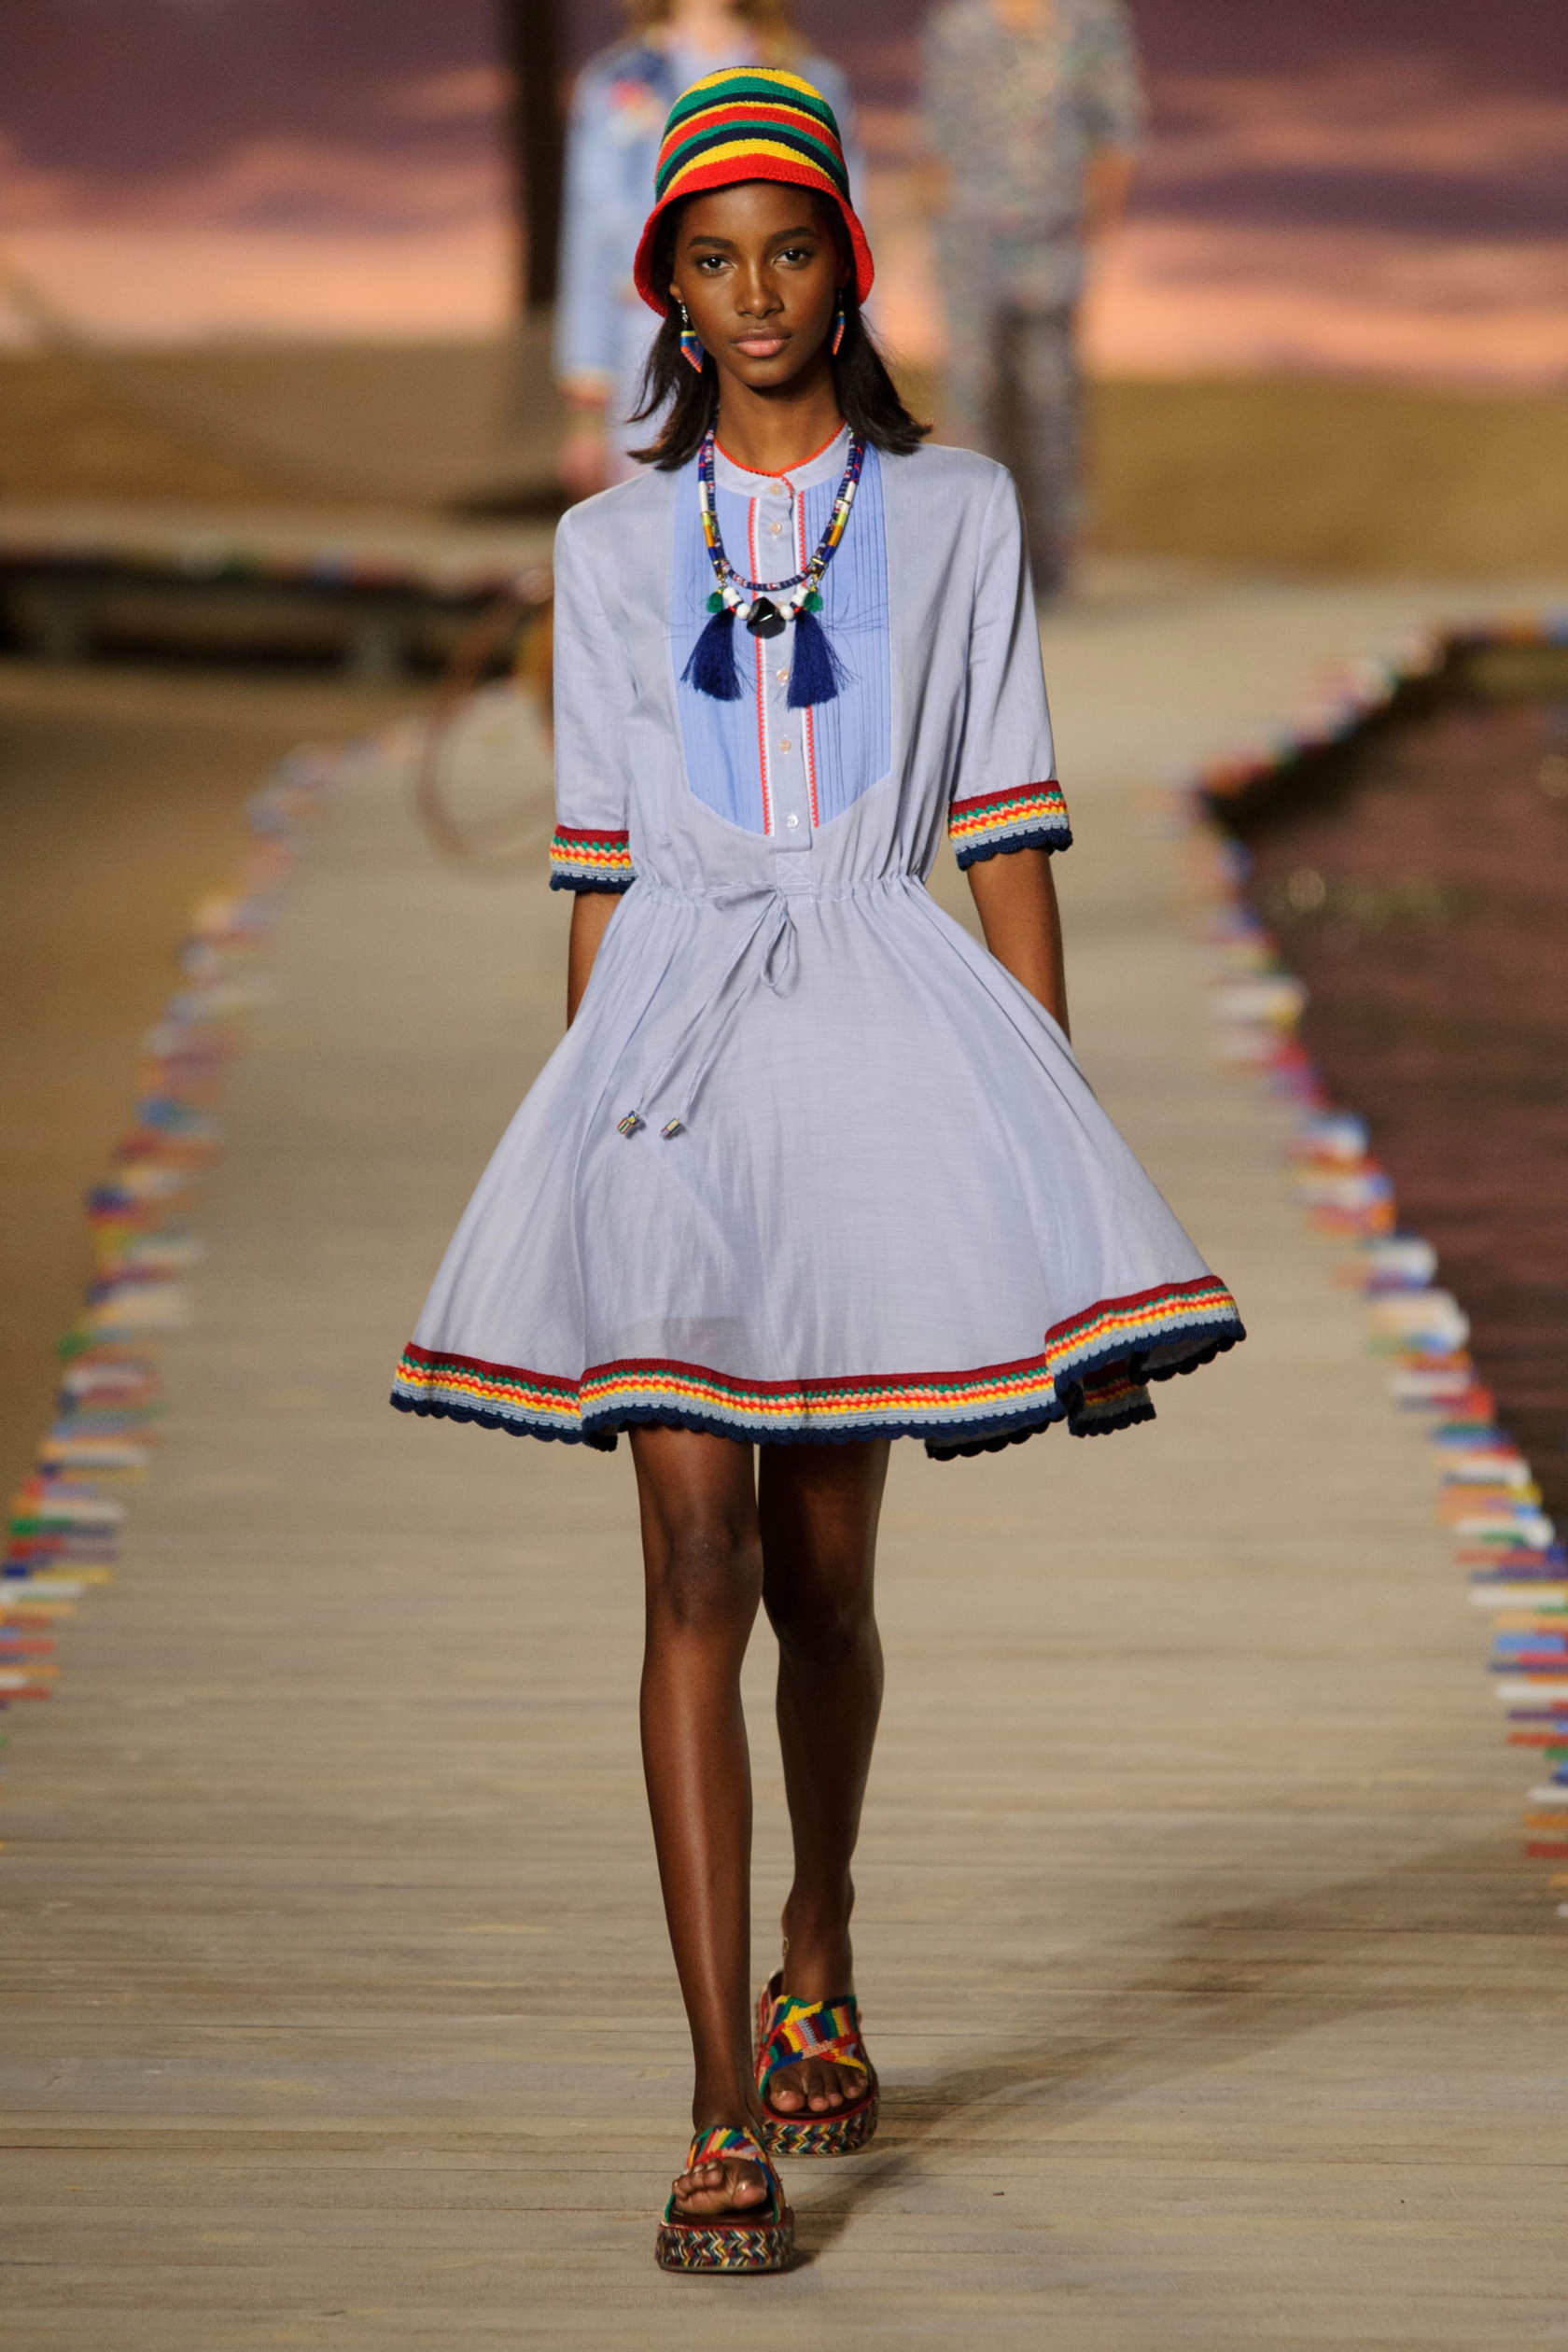 Photo 1 from Tommy Hilfiger